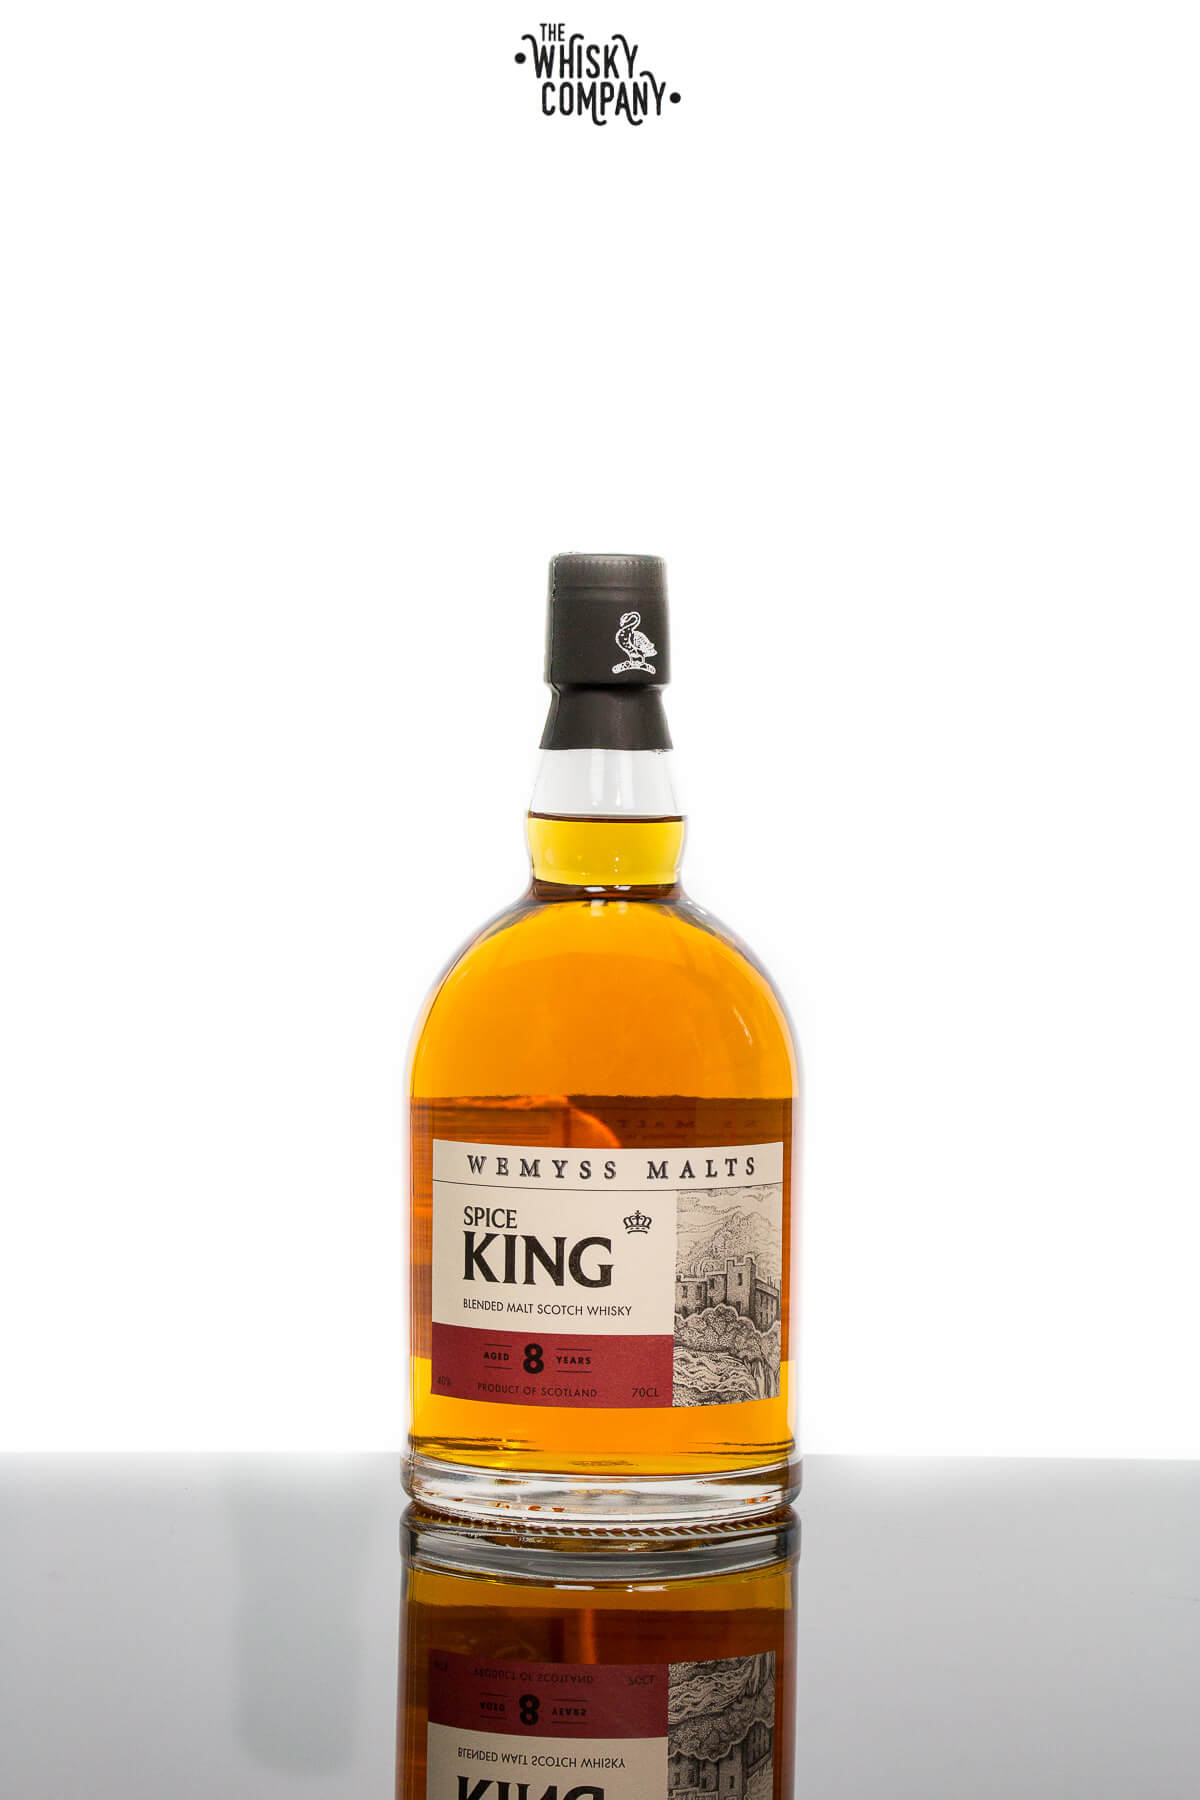 Wemyss Malts Spice King Blended Malt Scotch Whisky Aged 8 Years (700ml)